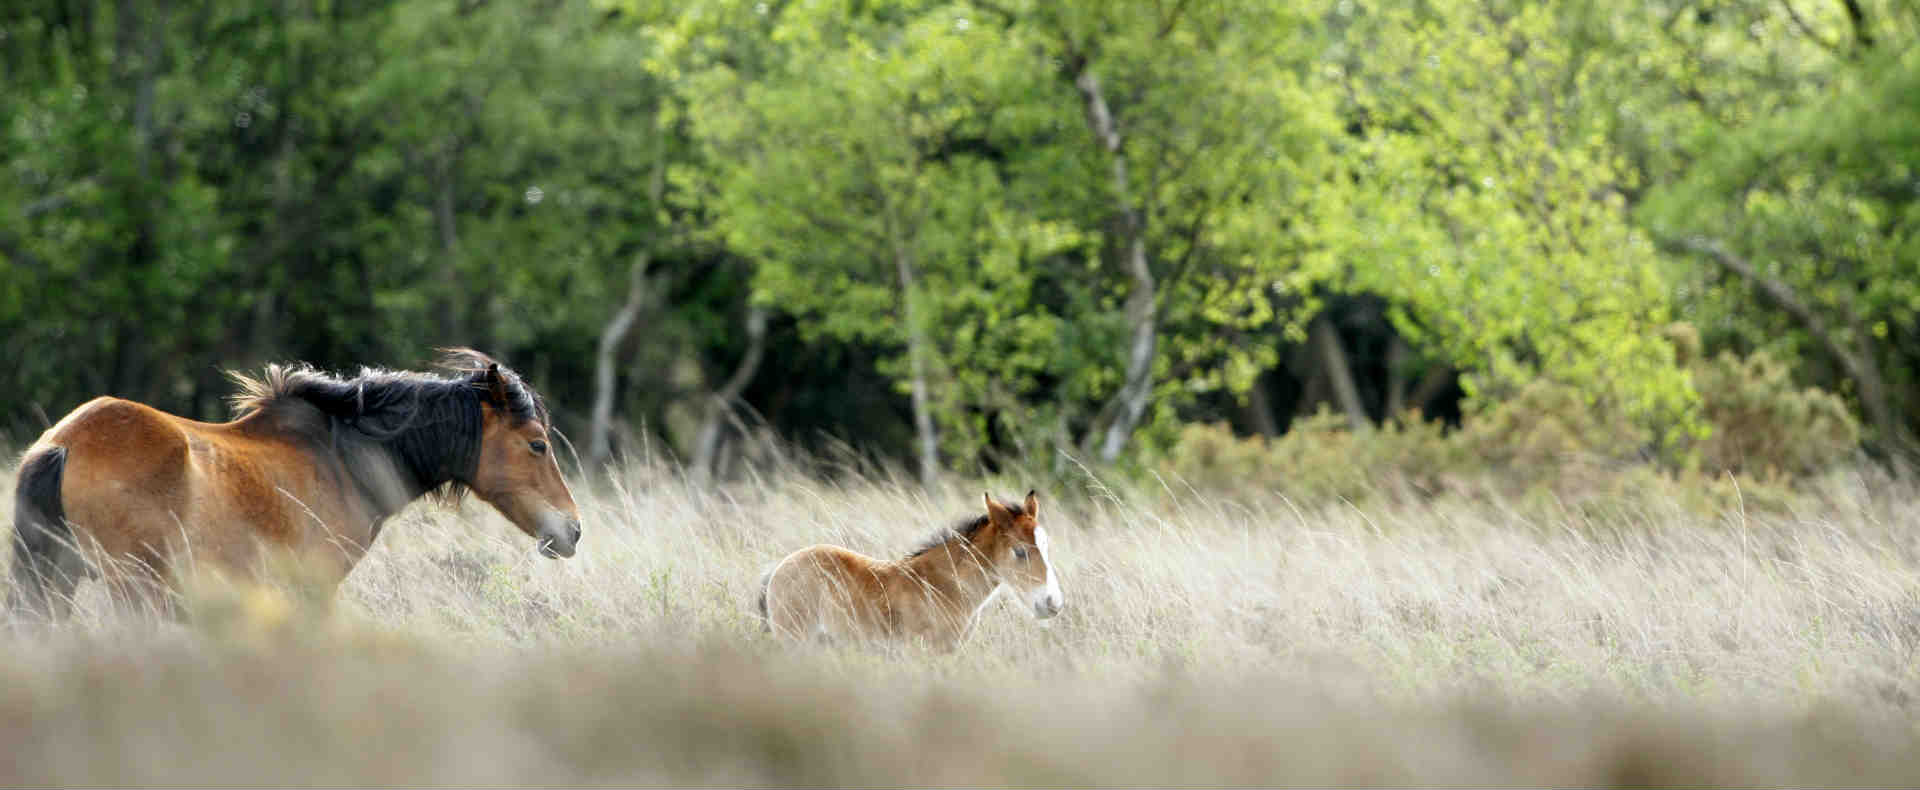 The New Forest: The Ideal 'Staycation' This Summer1